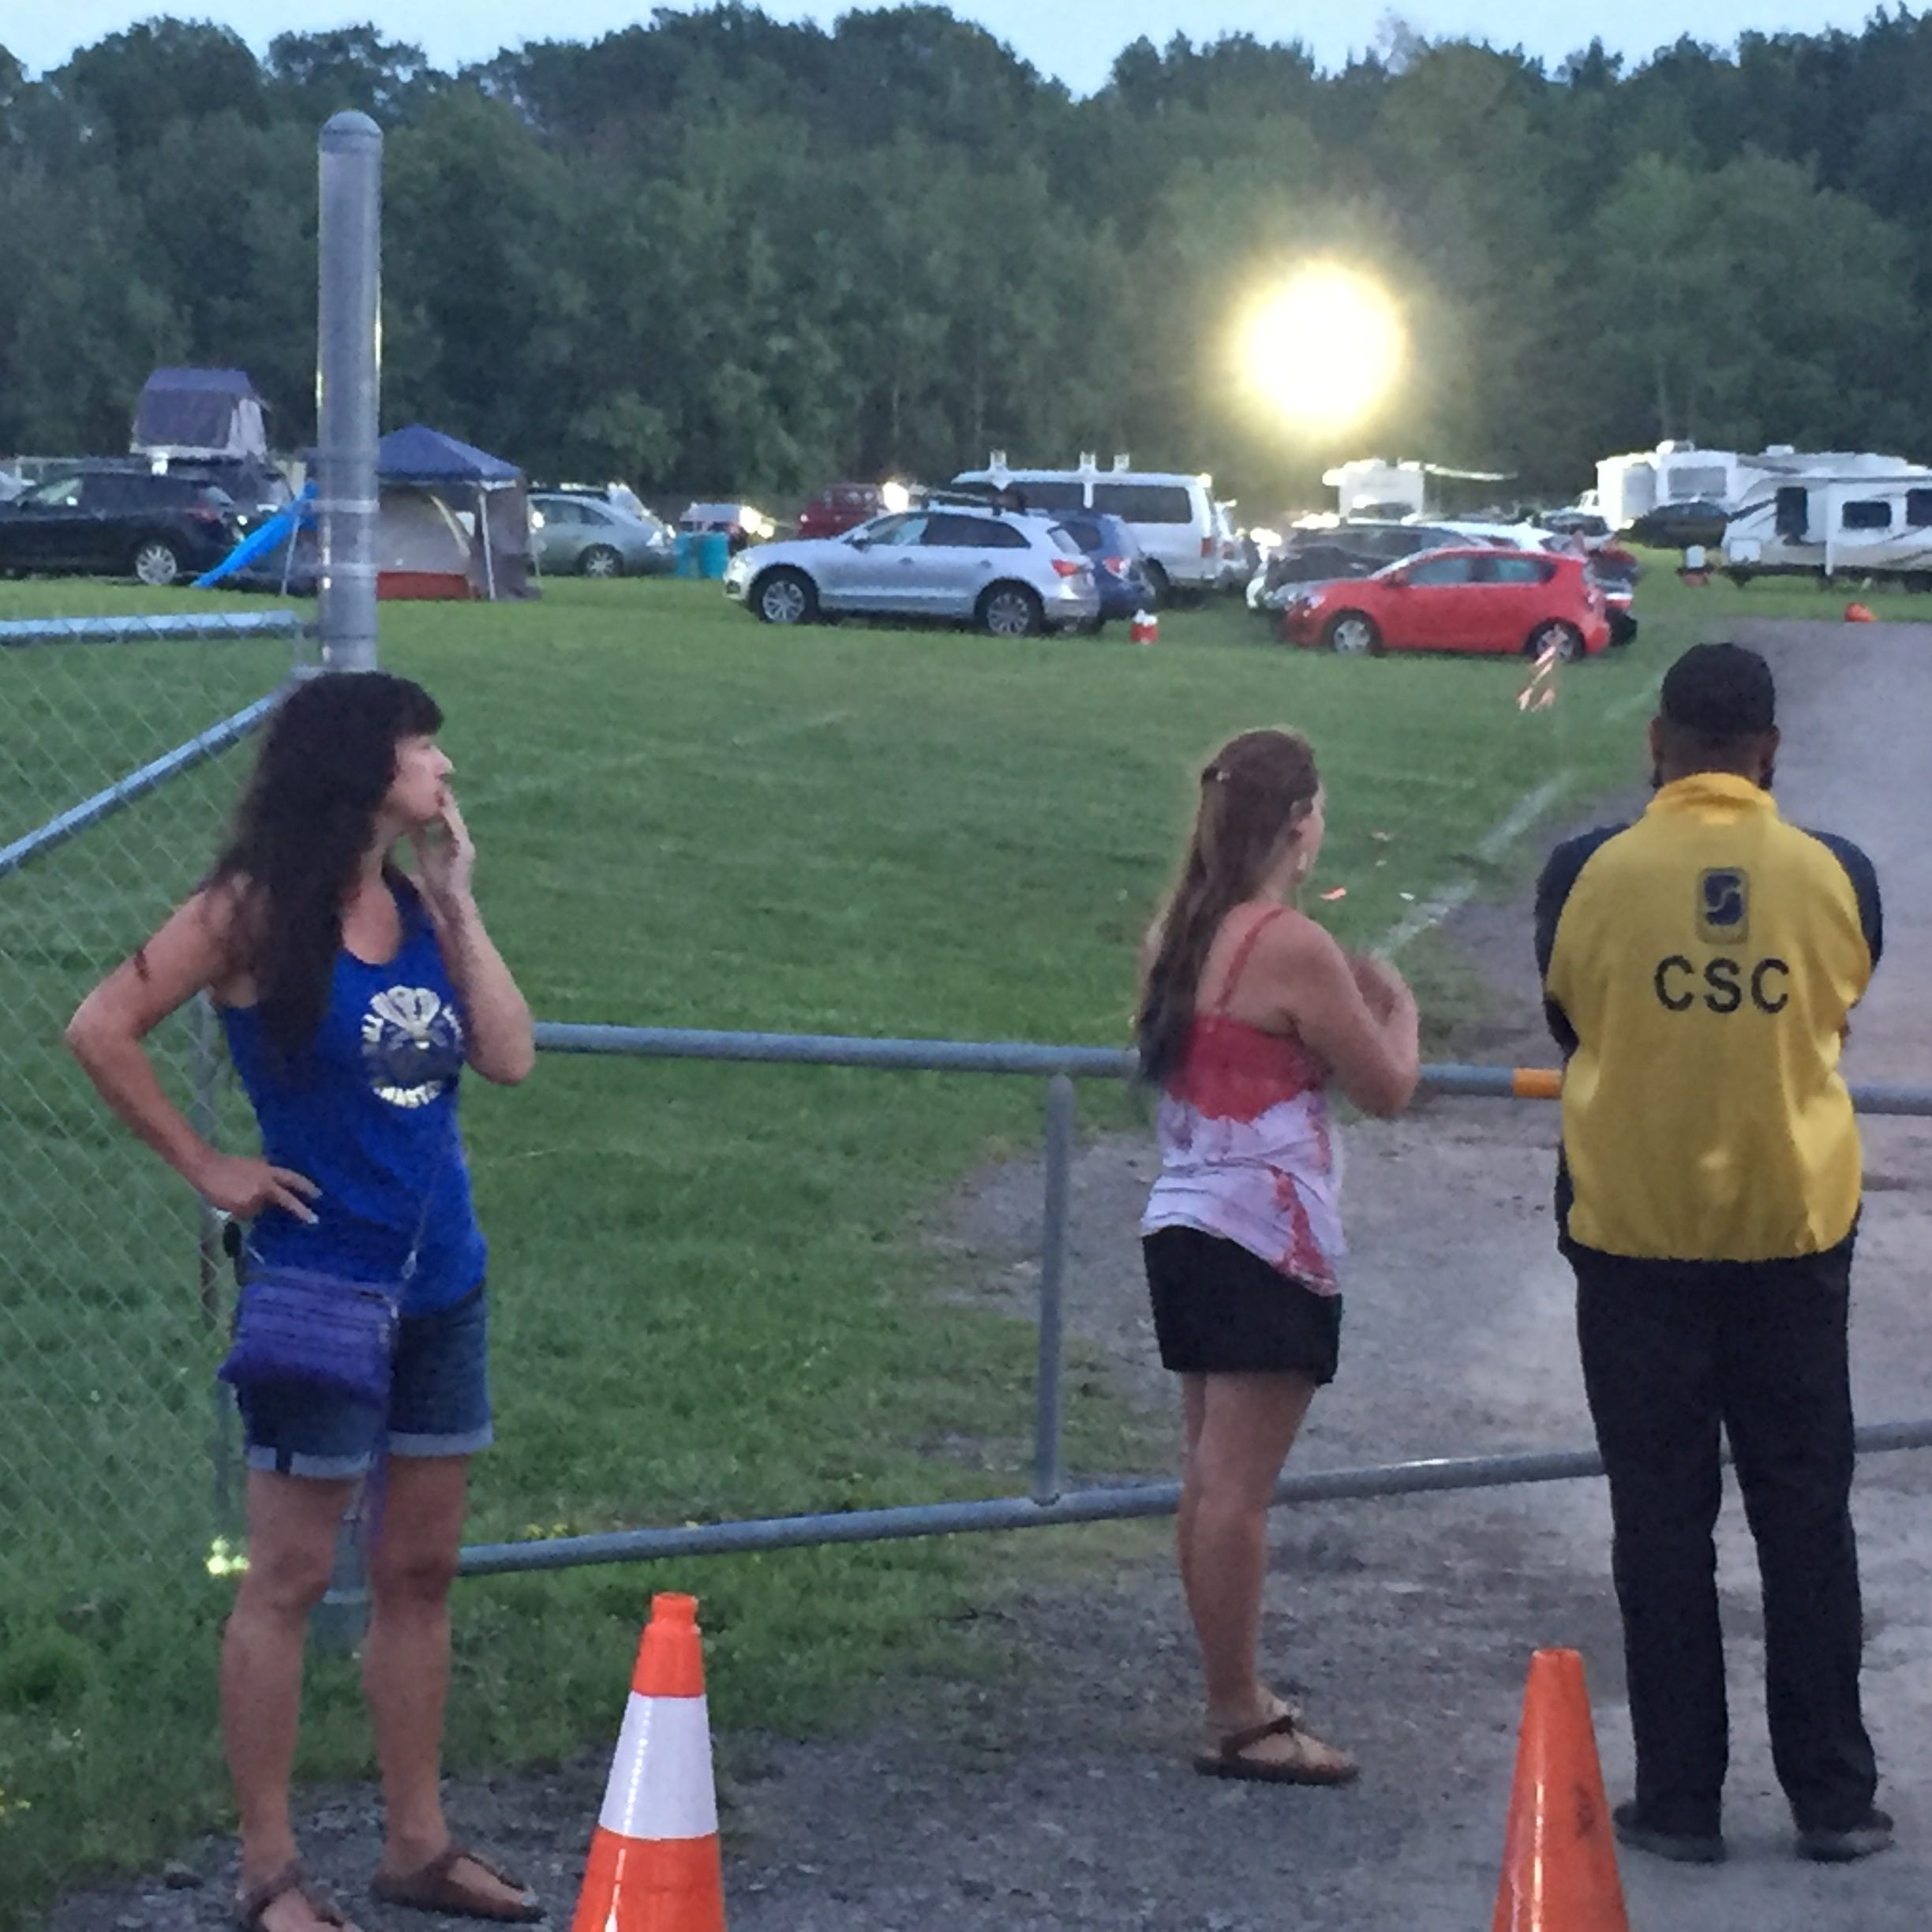 Curveball canceled: Phish fans turn around and hit the road